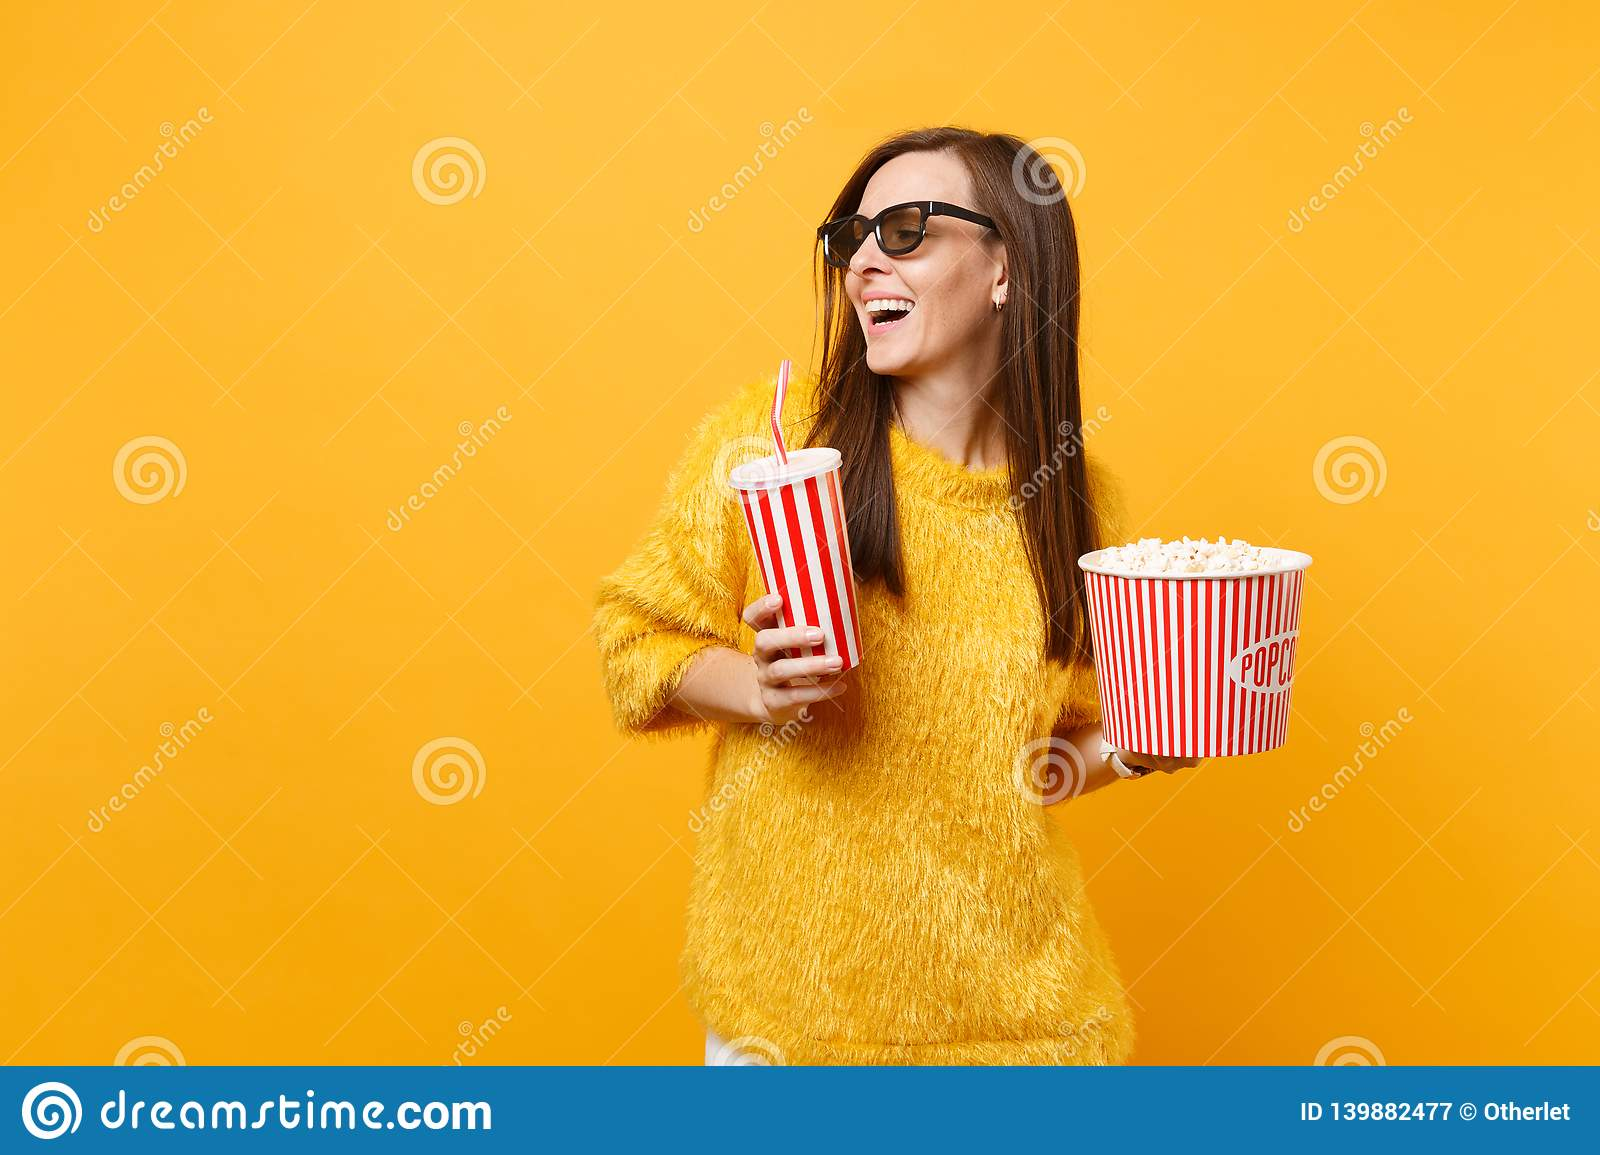 Joyful young woman in 3d imax glasses looking aside watching movie film hold bucket of popcorn, plastic cup of cola or